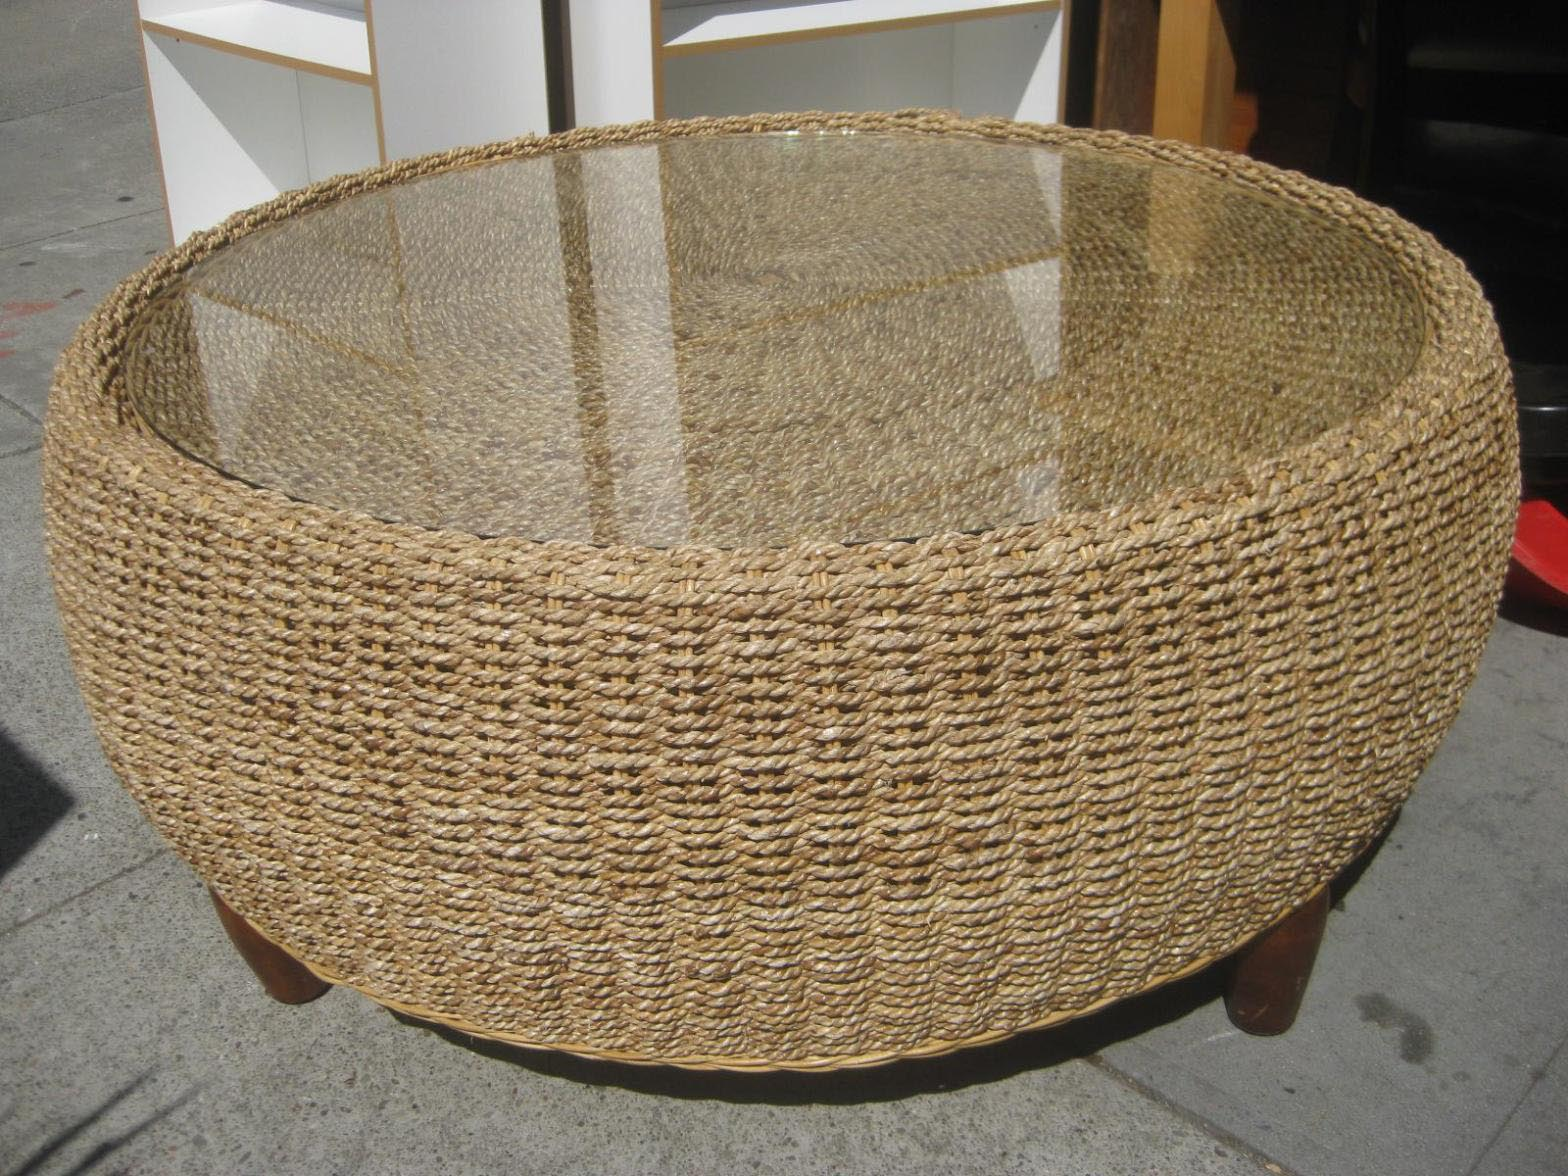 Rattan coffee table with glass top coffee table design ideas for Rattan couchtisch